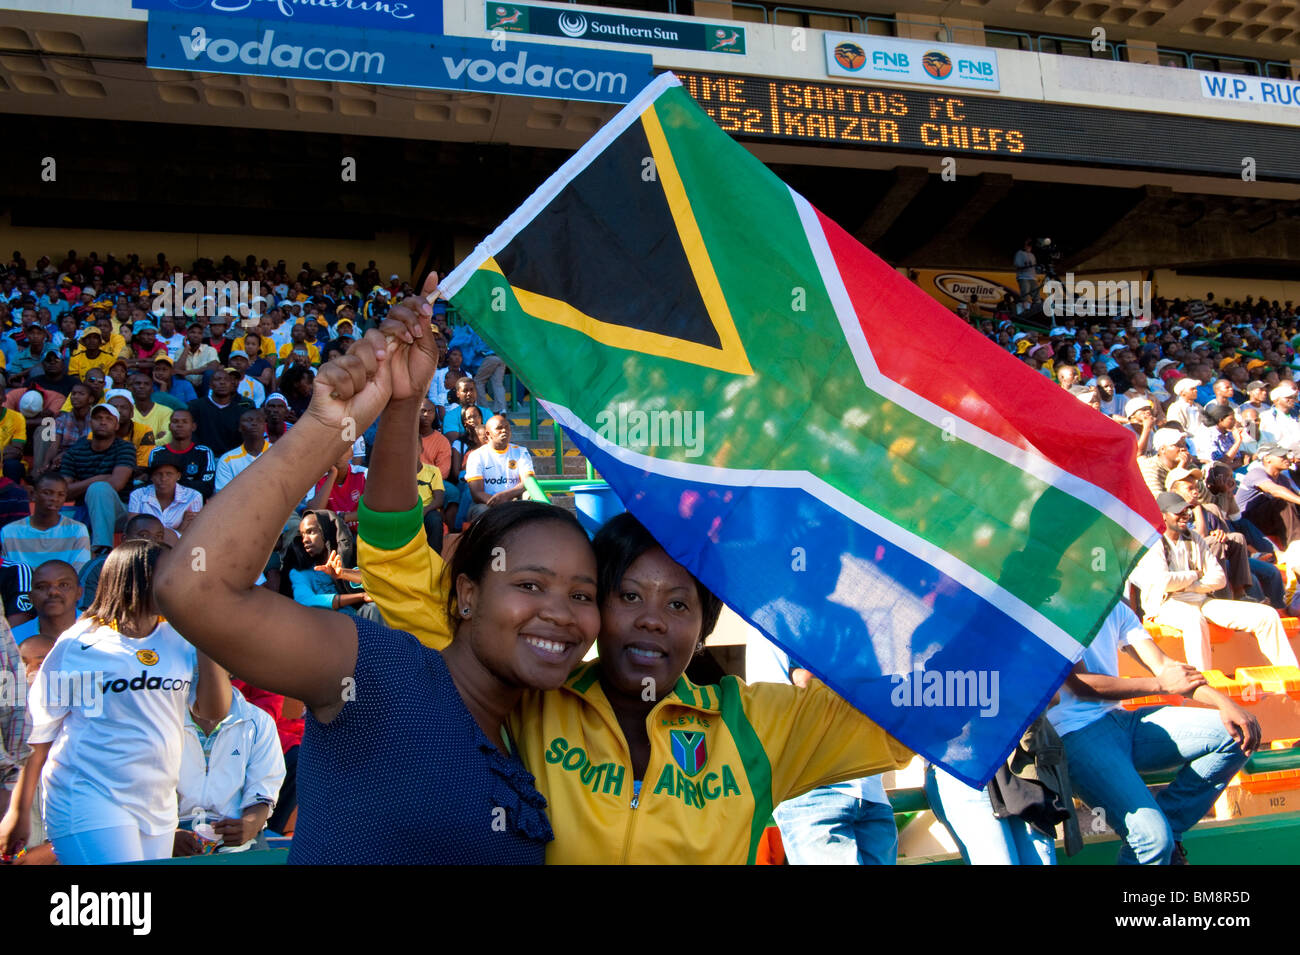 b4d8434f4db Crowd scene football supporters with national flag Cape Town South Africa -  Stock Image